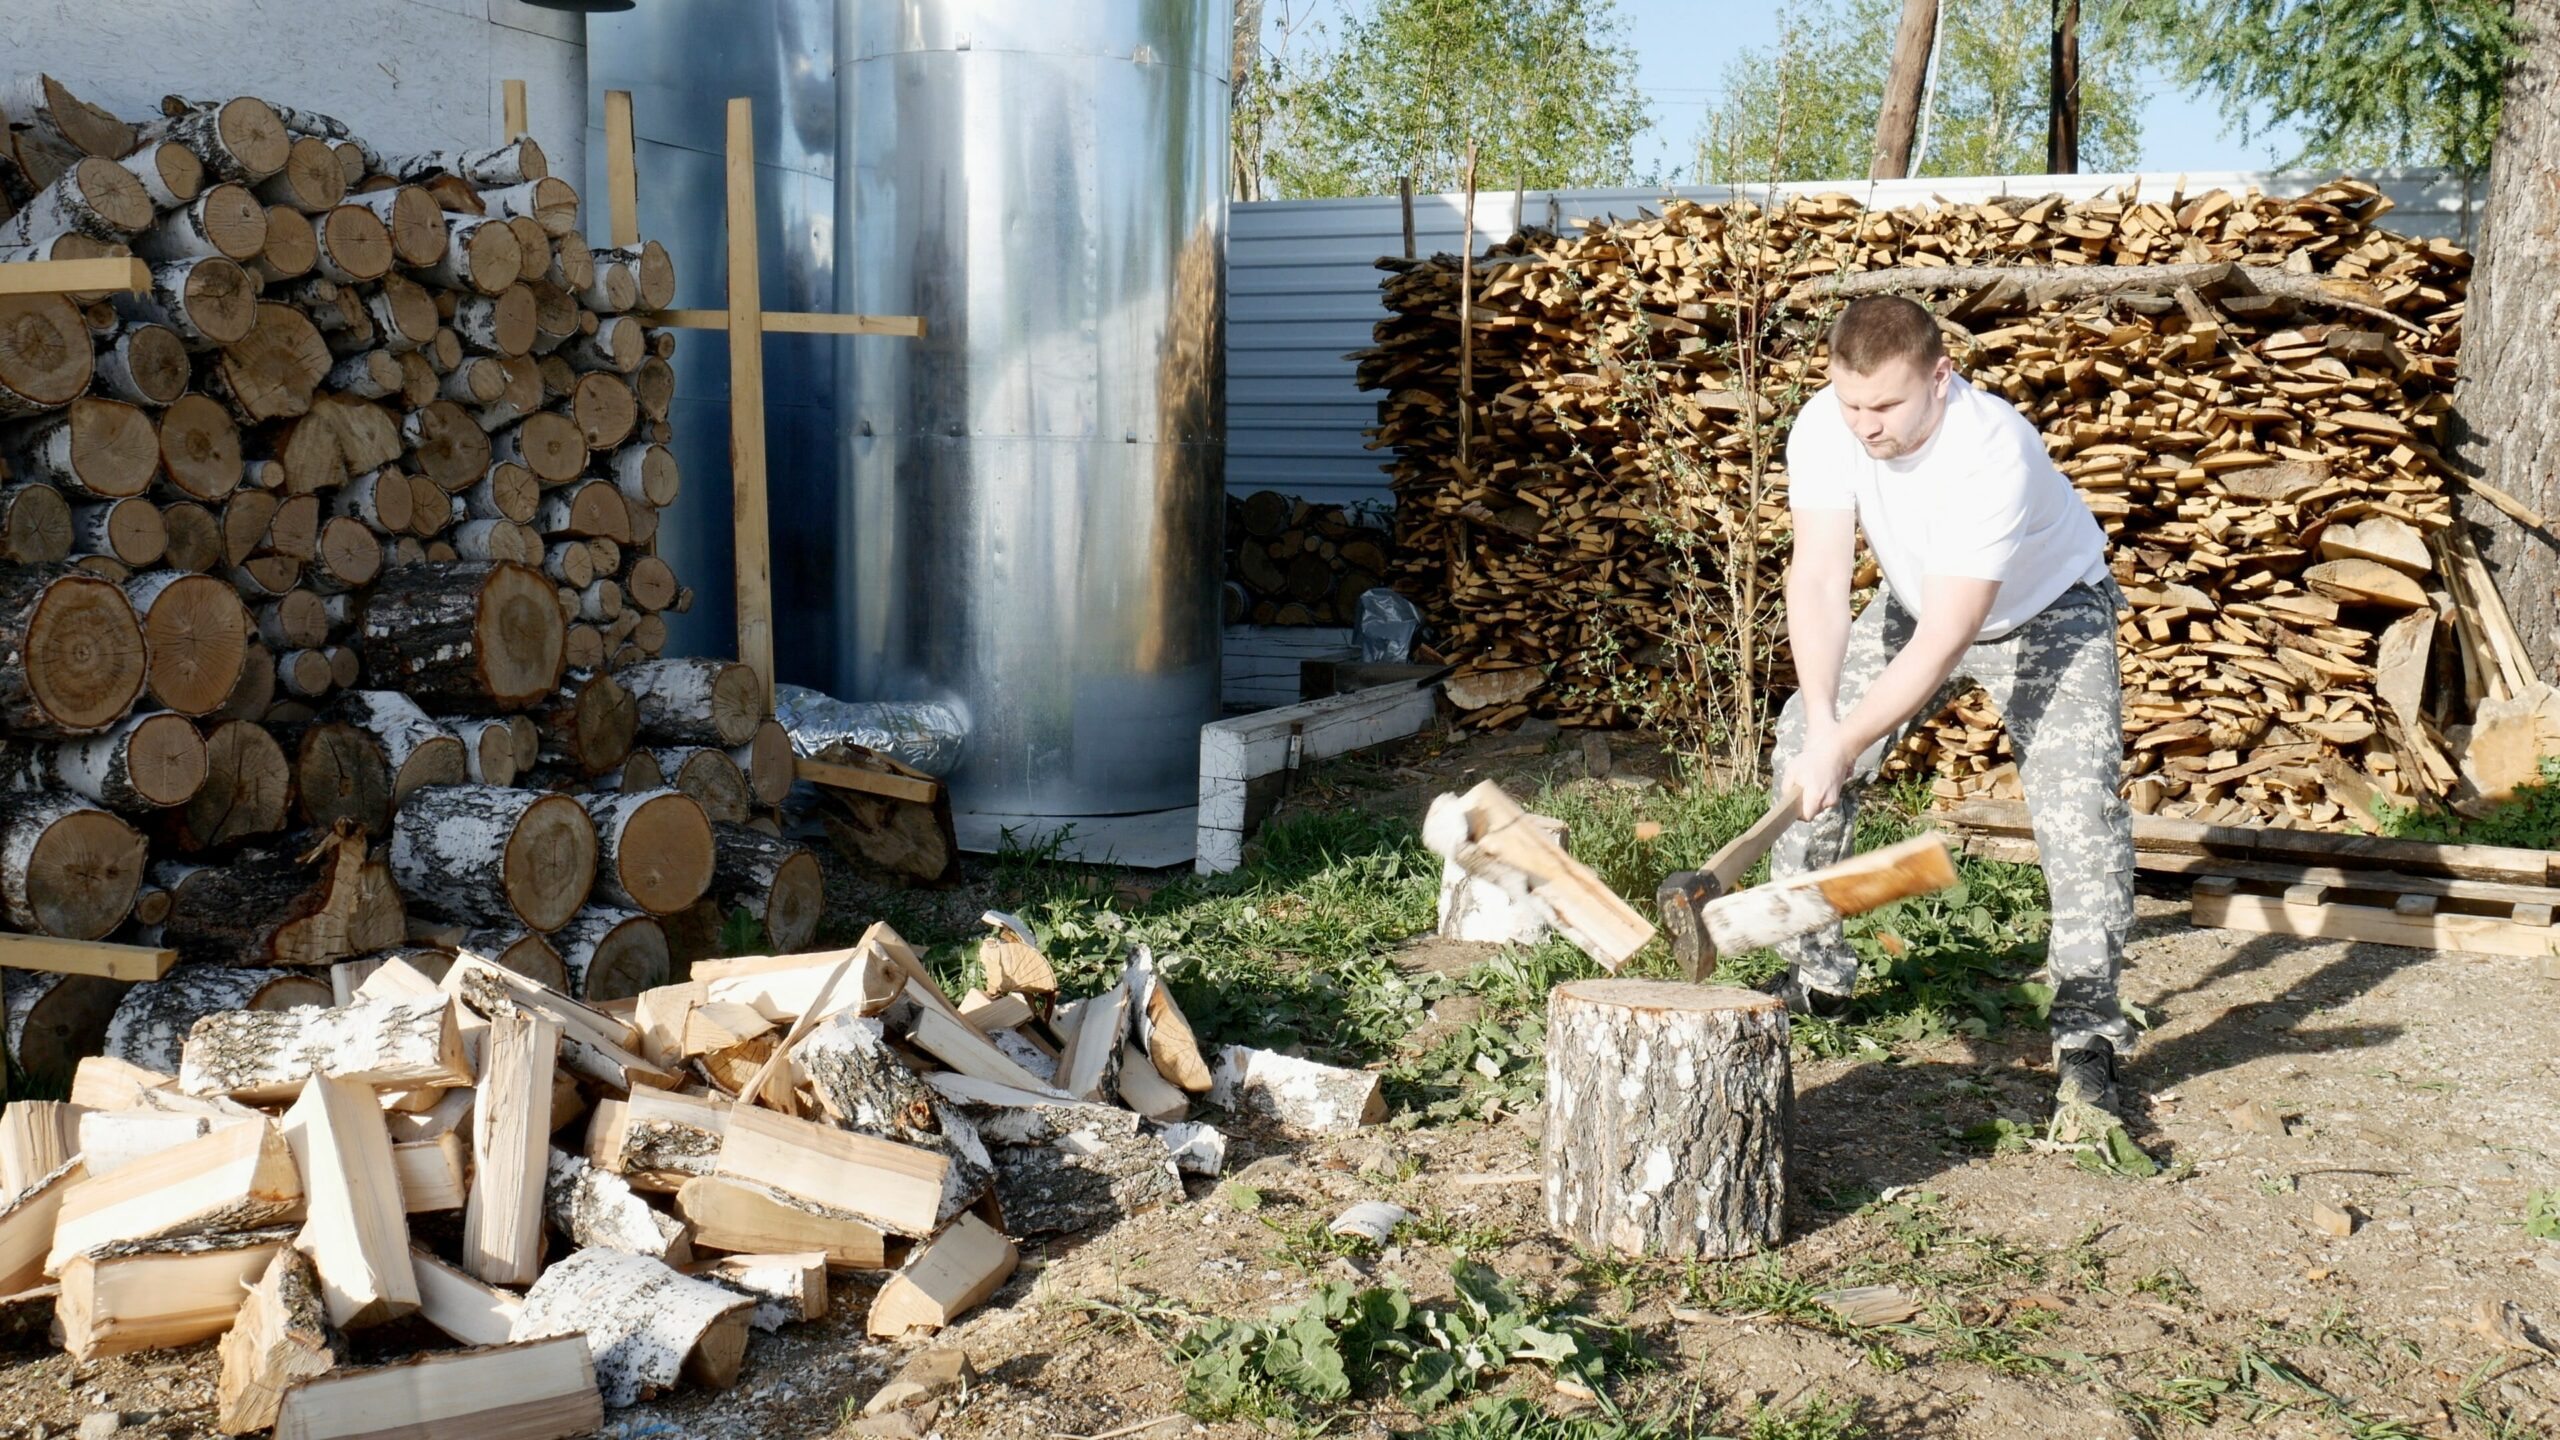 If you will be collecting wood for your fireplace, check its moisture before burning it